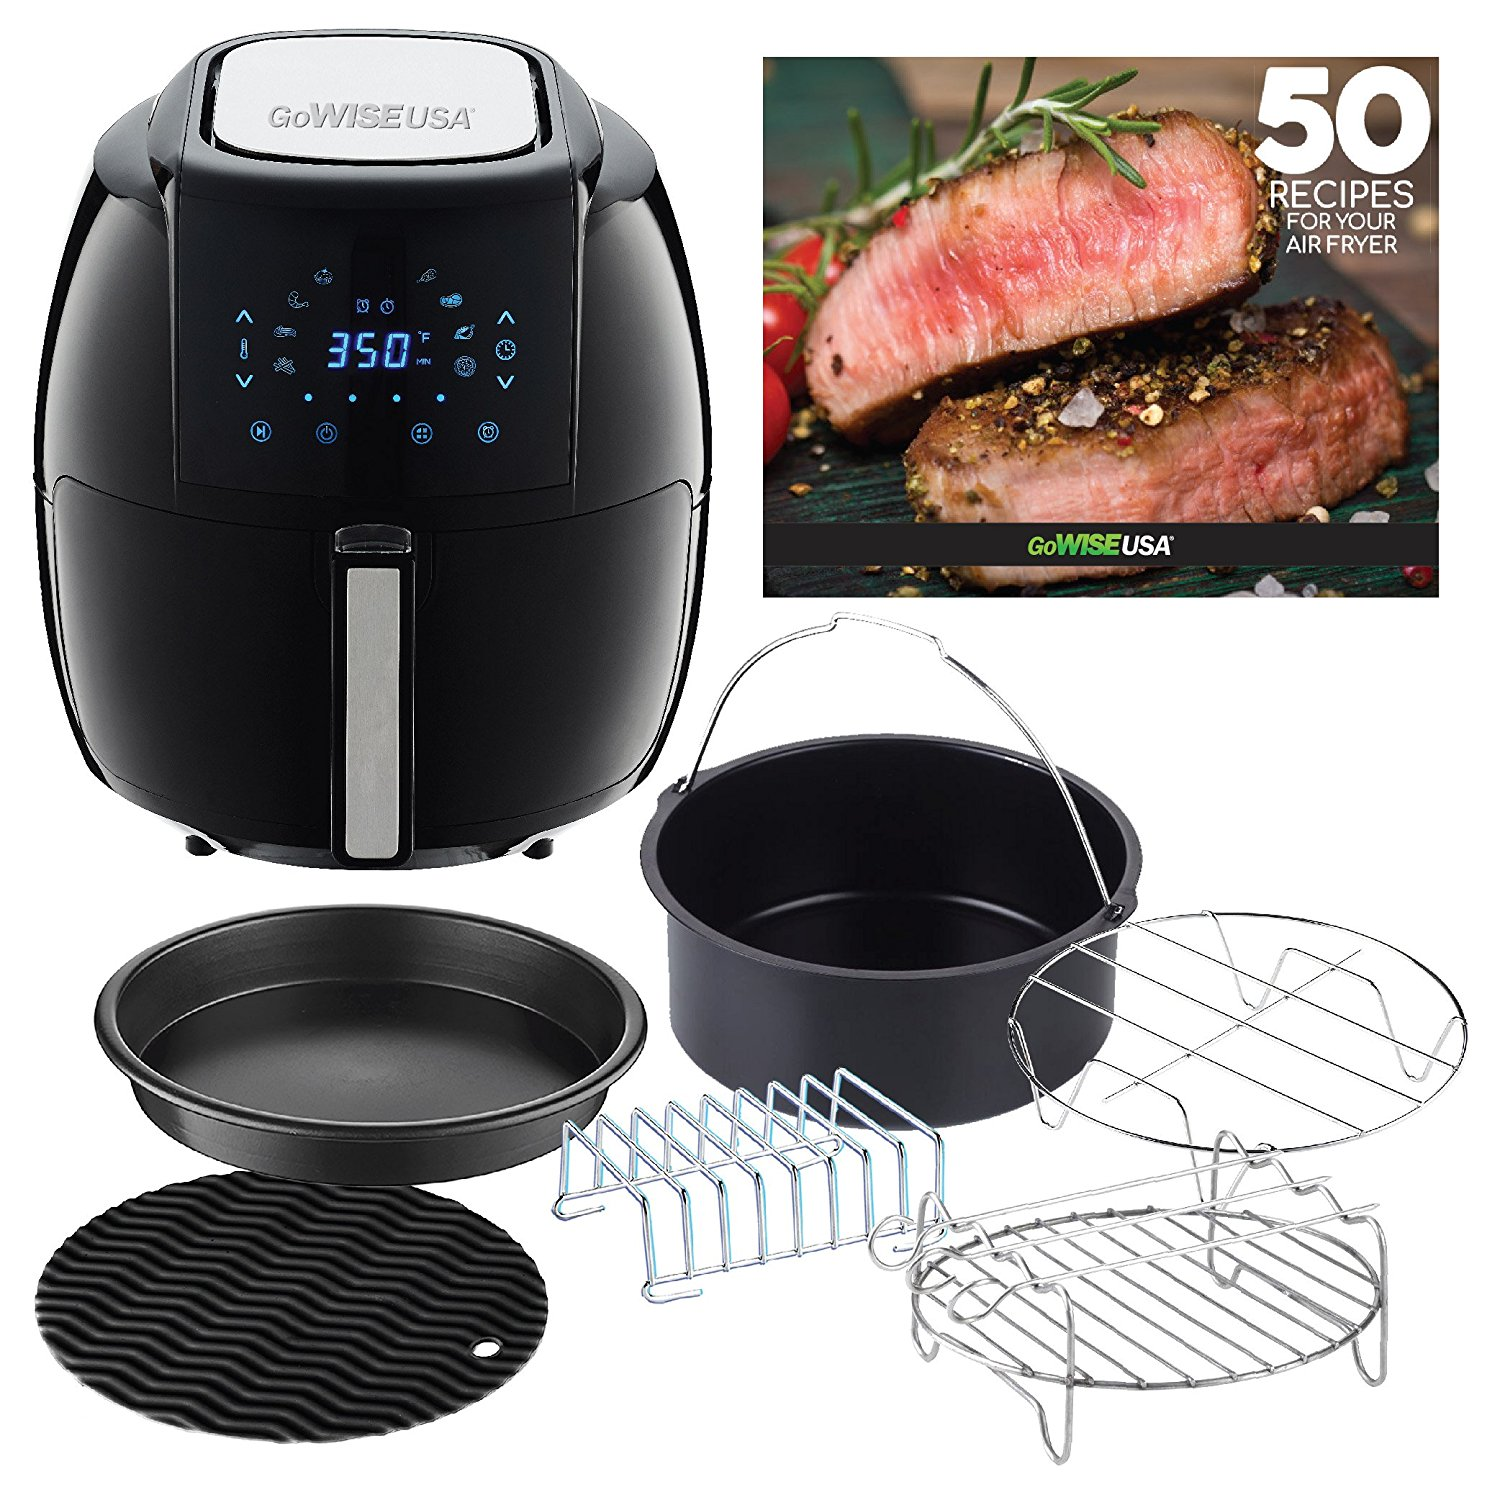 Gowise Air Fryer review – The best Air Fryer guide